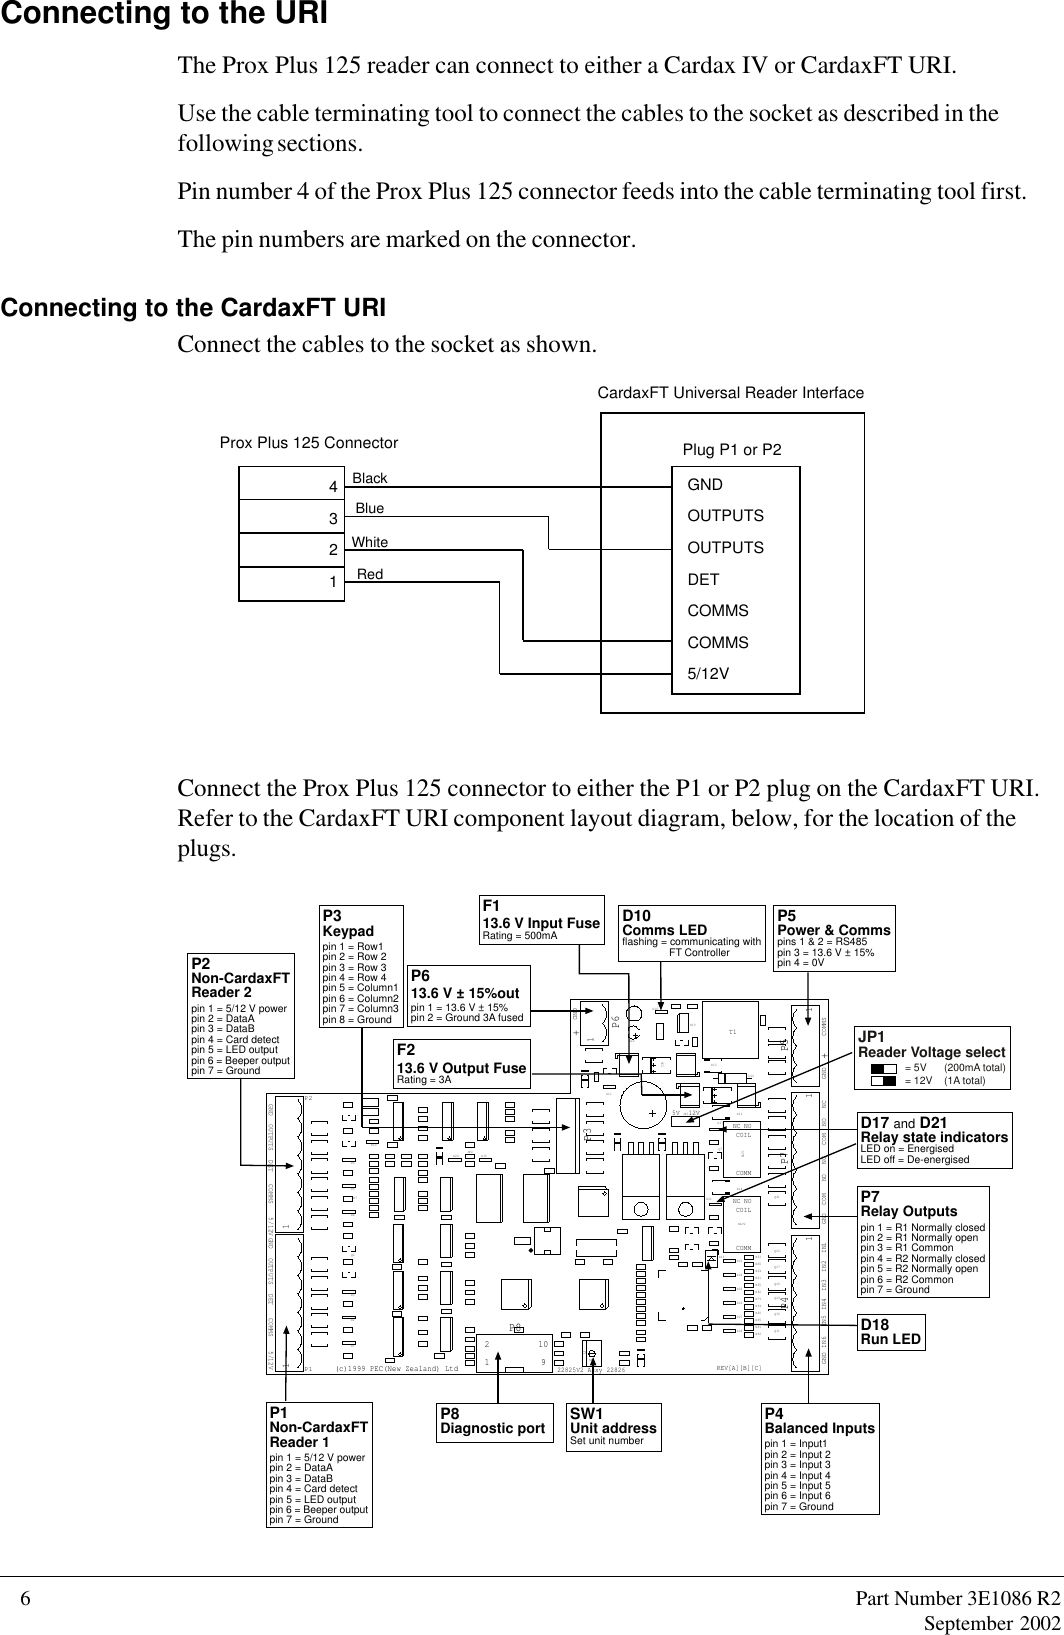 Gallagher Group 19087y Cardax Iv 125 Series Prox Plus Reader User 2 Wire Proximity Sensor Wiring Diagram 6 Part Number 3e1086 R2september 2002connecting To The Urithe Can Connect